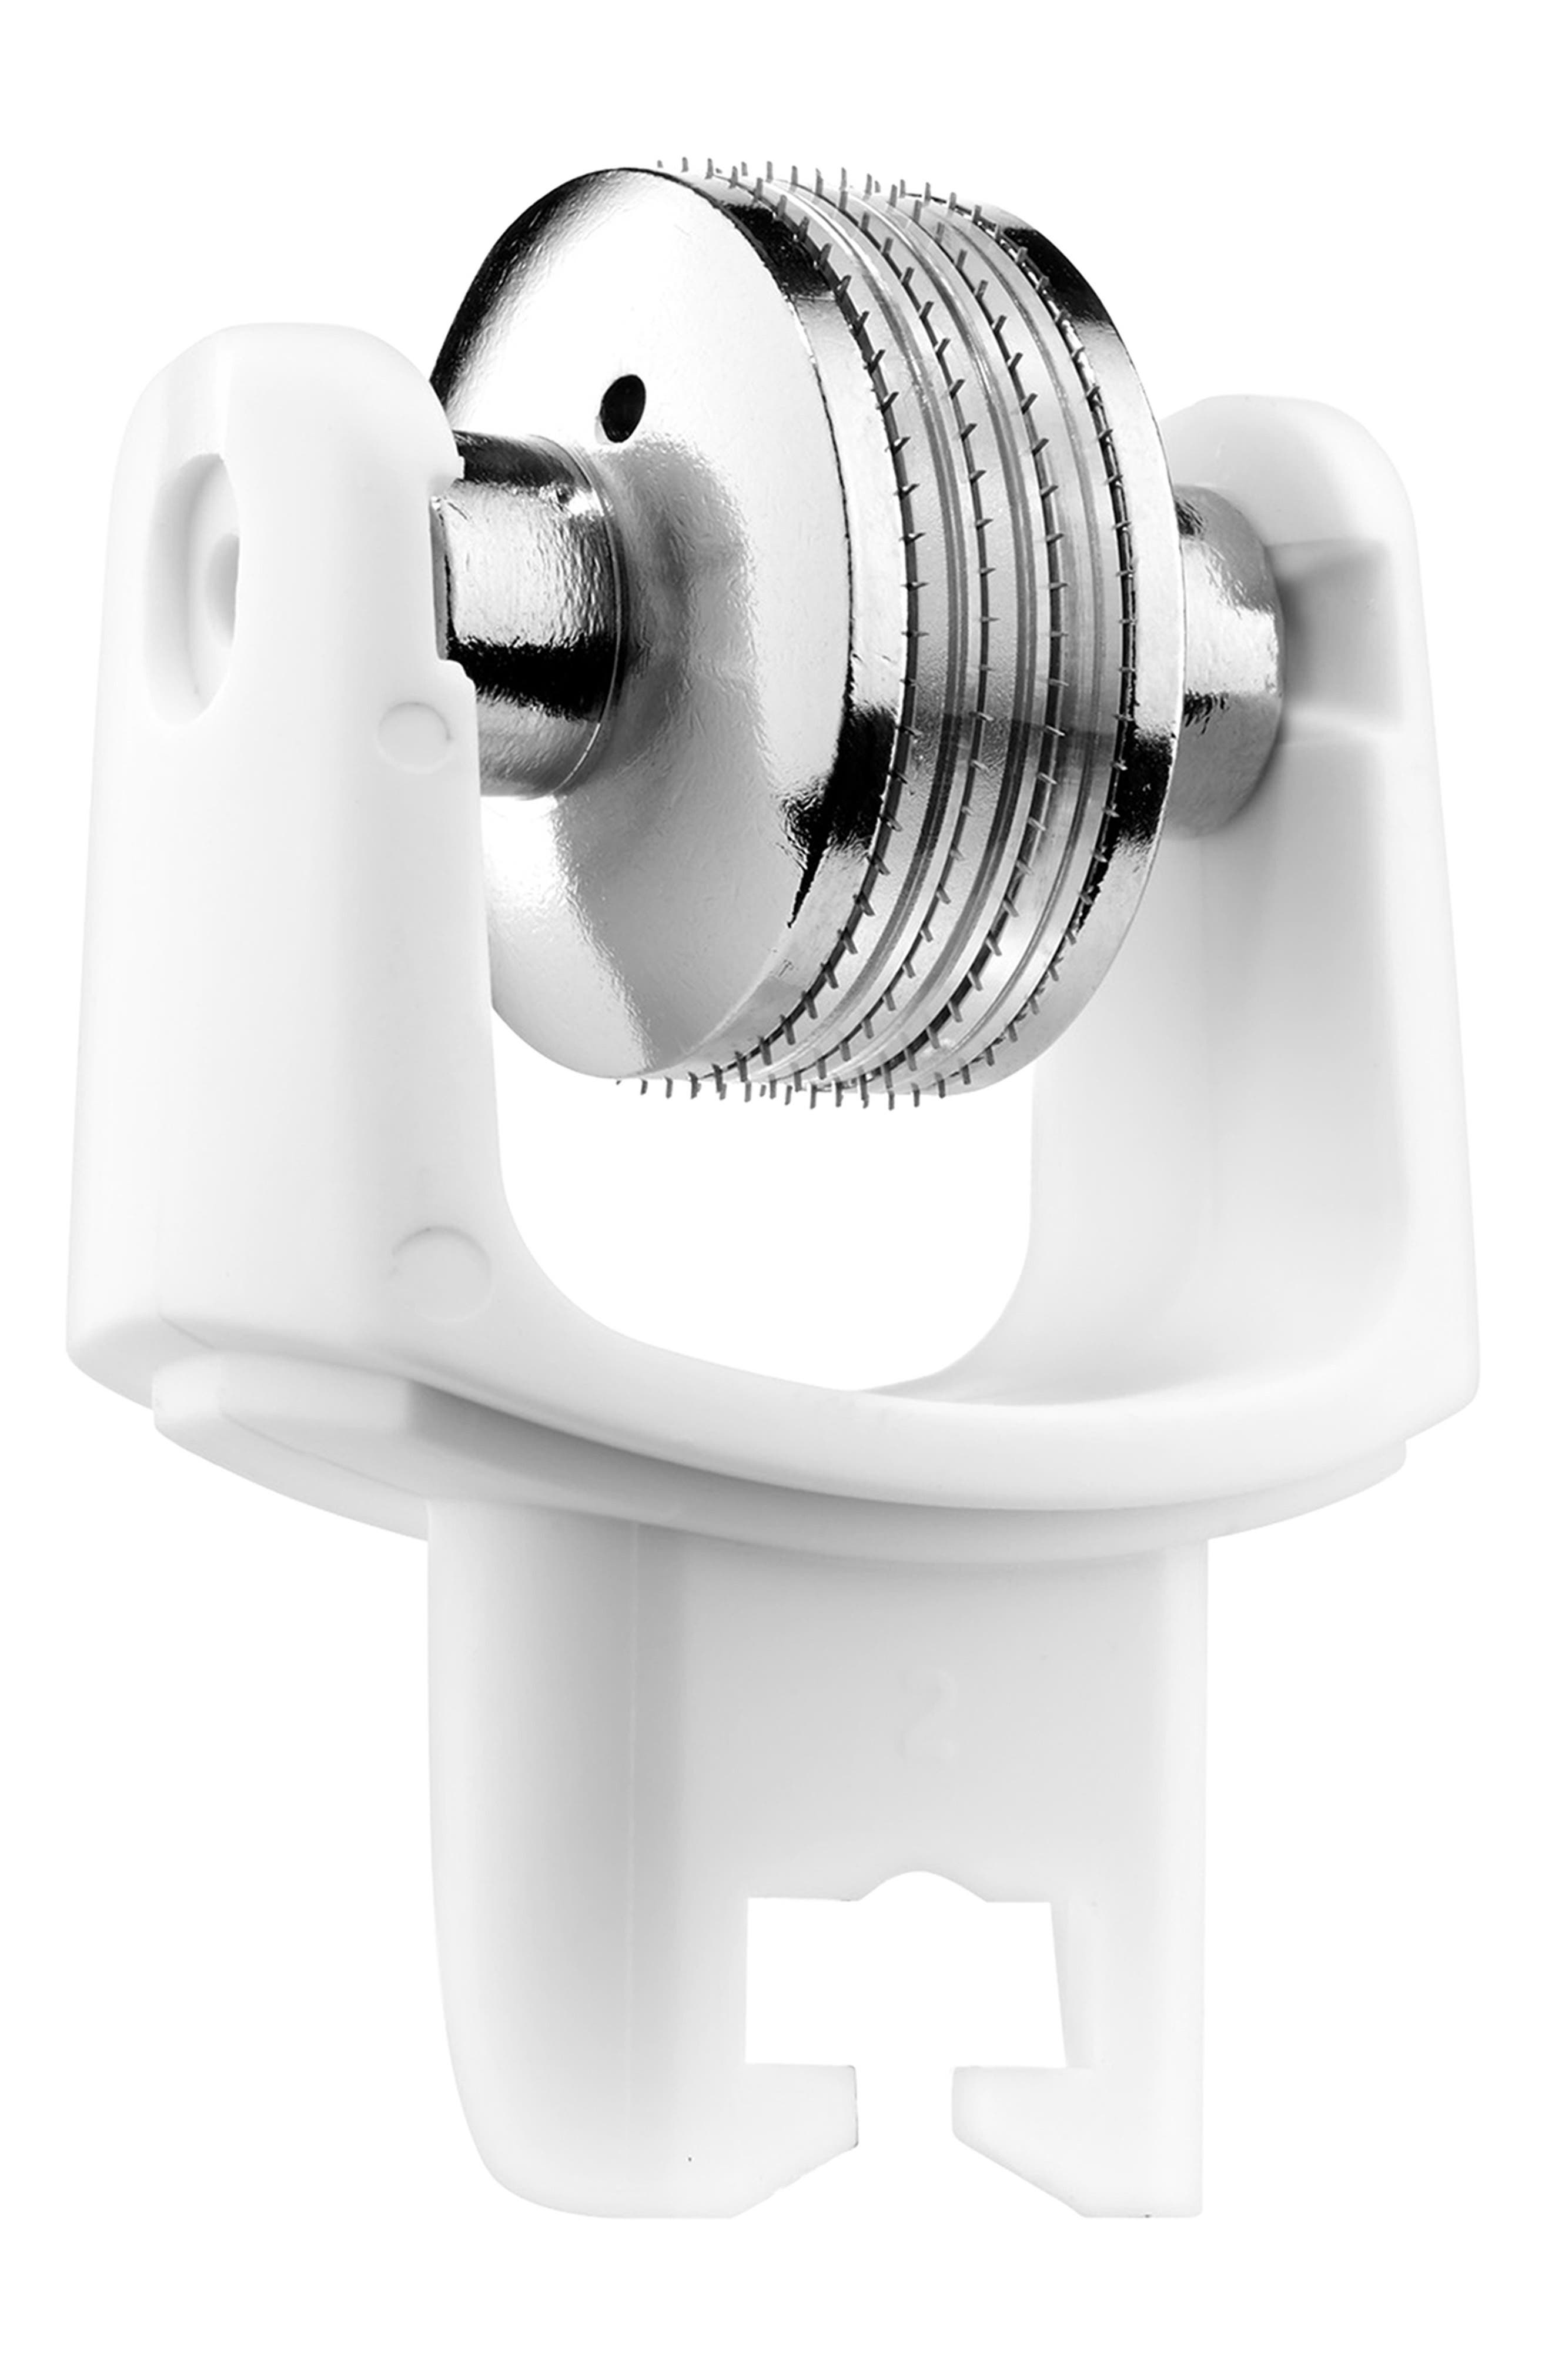 BEAUTYBIO GloPRO<sup>®</sup> EYE MicroTip<sup>™</sup> Attachment Replacement Head, Main, color, WHITE